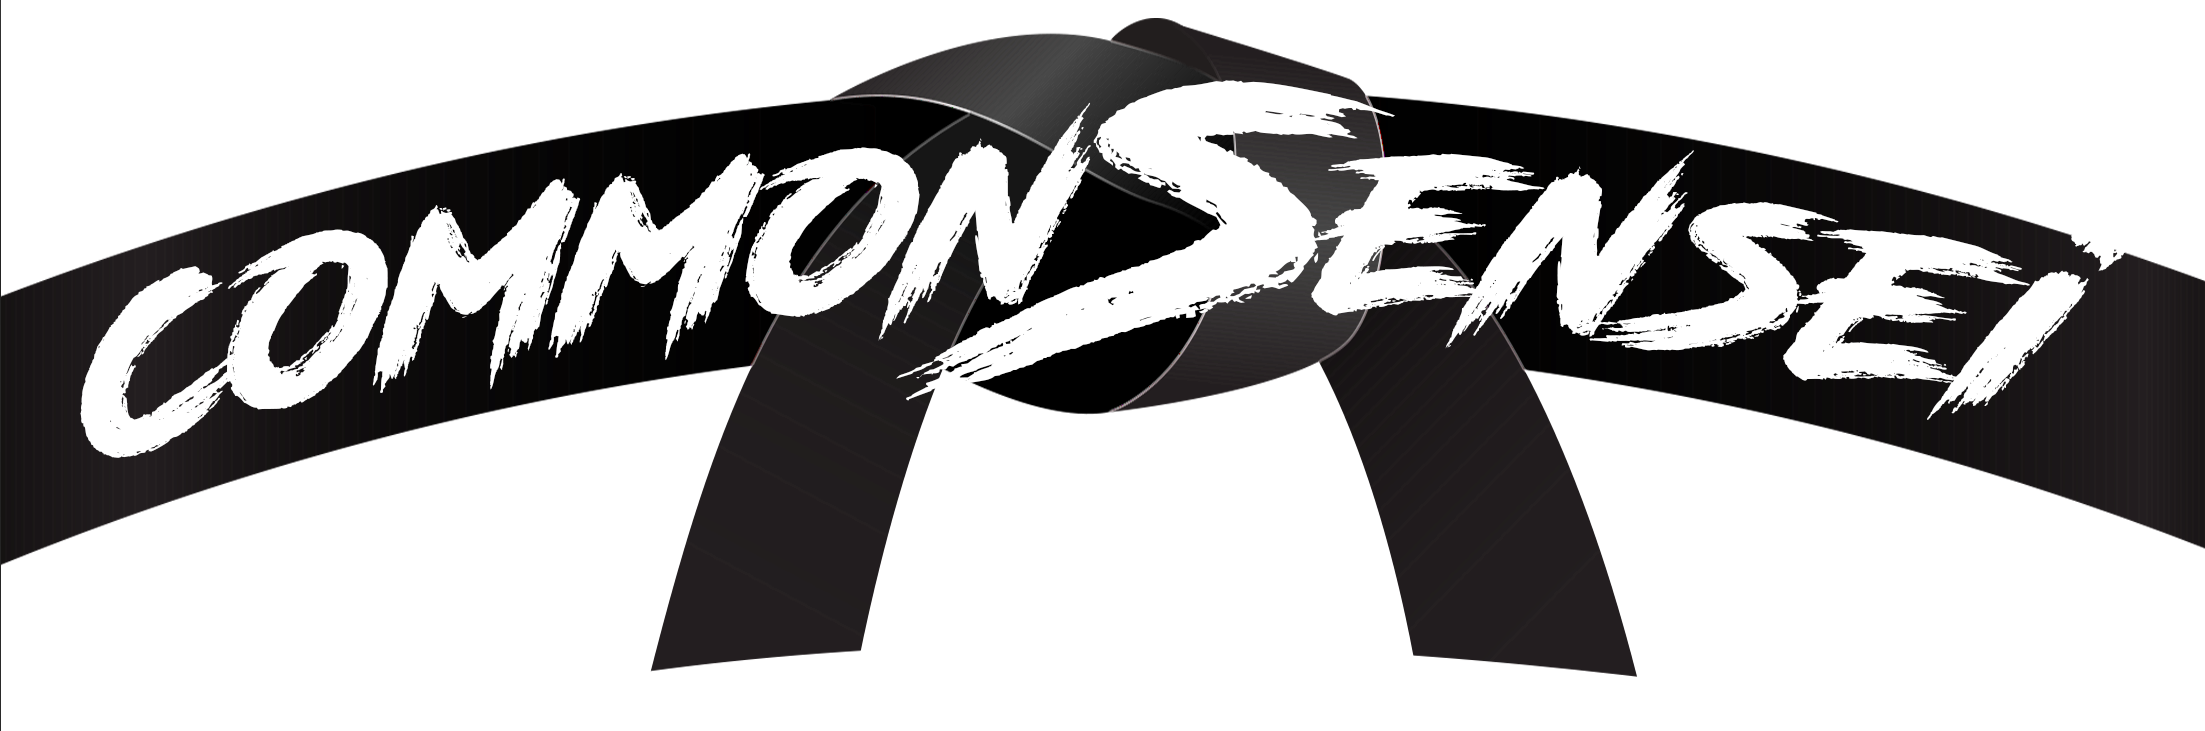 common sensei logo